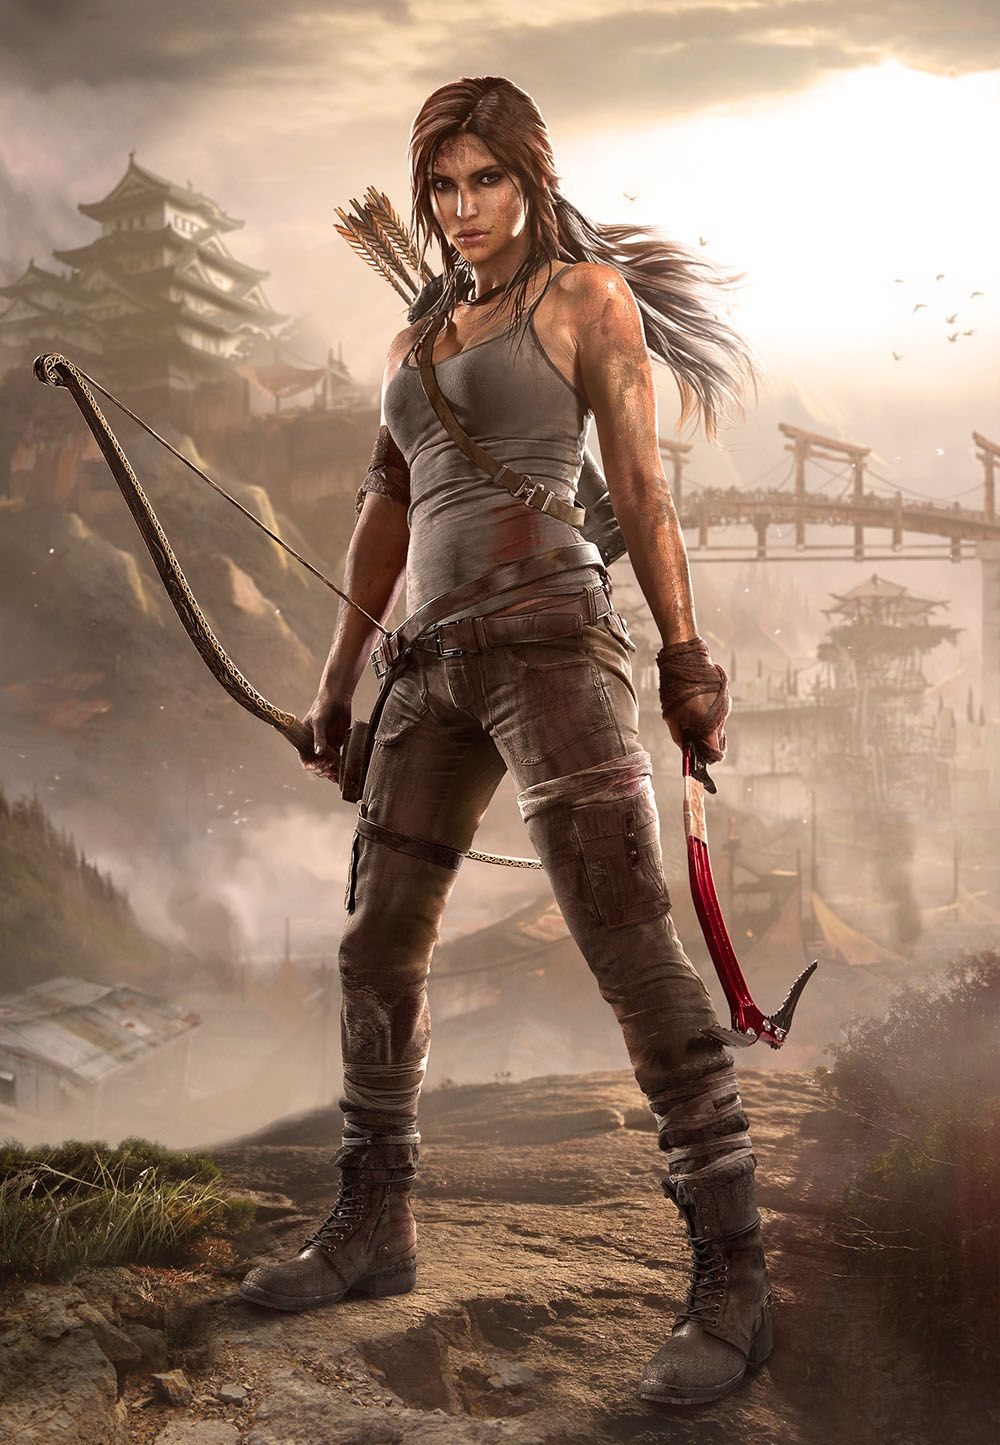 Lara Croft Tomb Raider 2013 Outfits